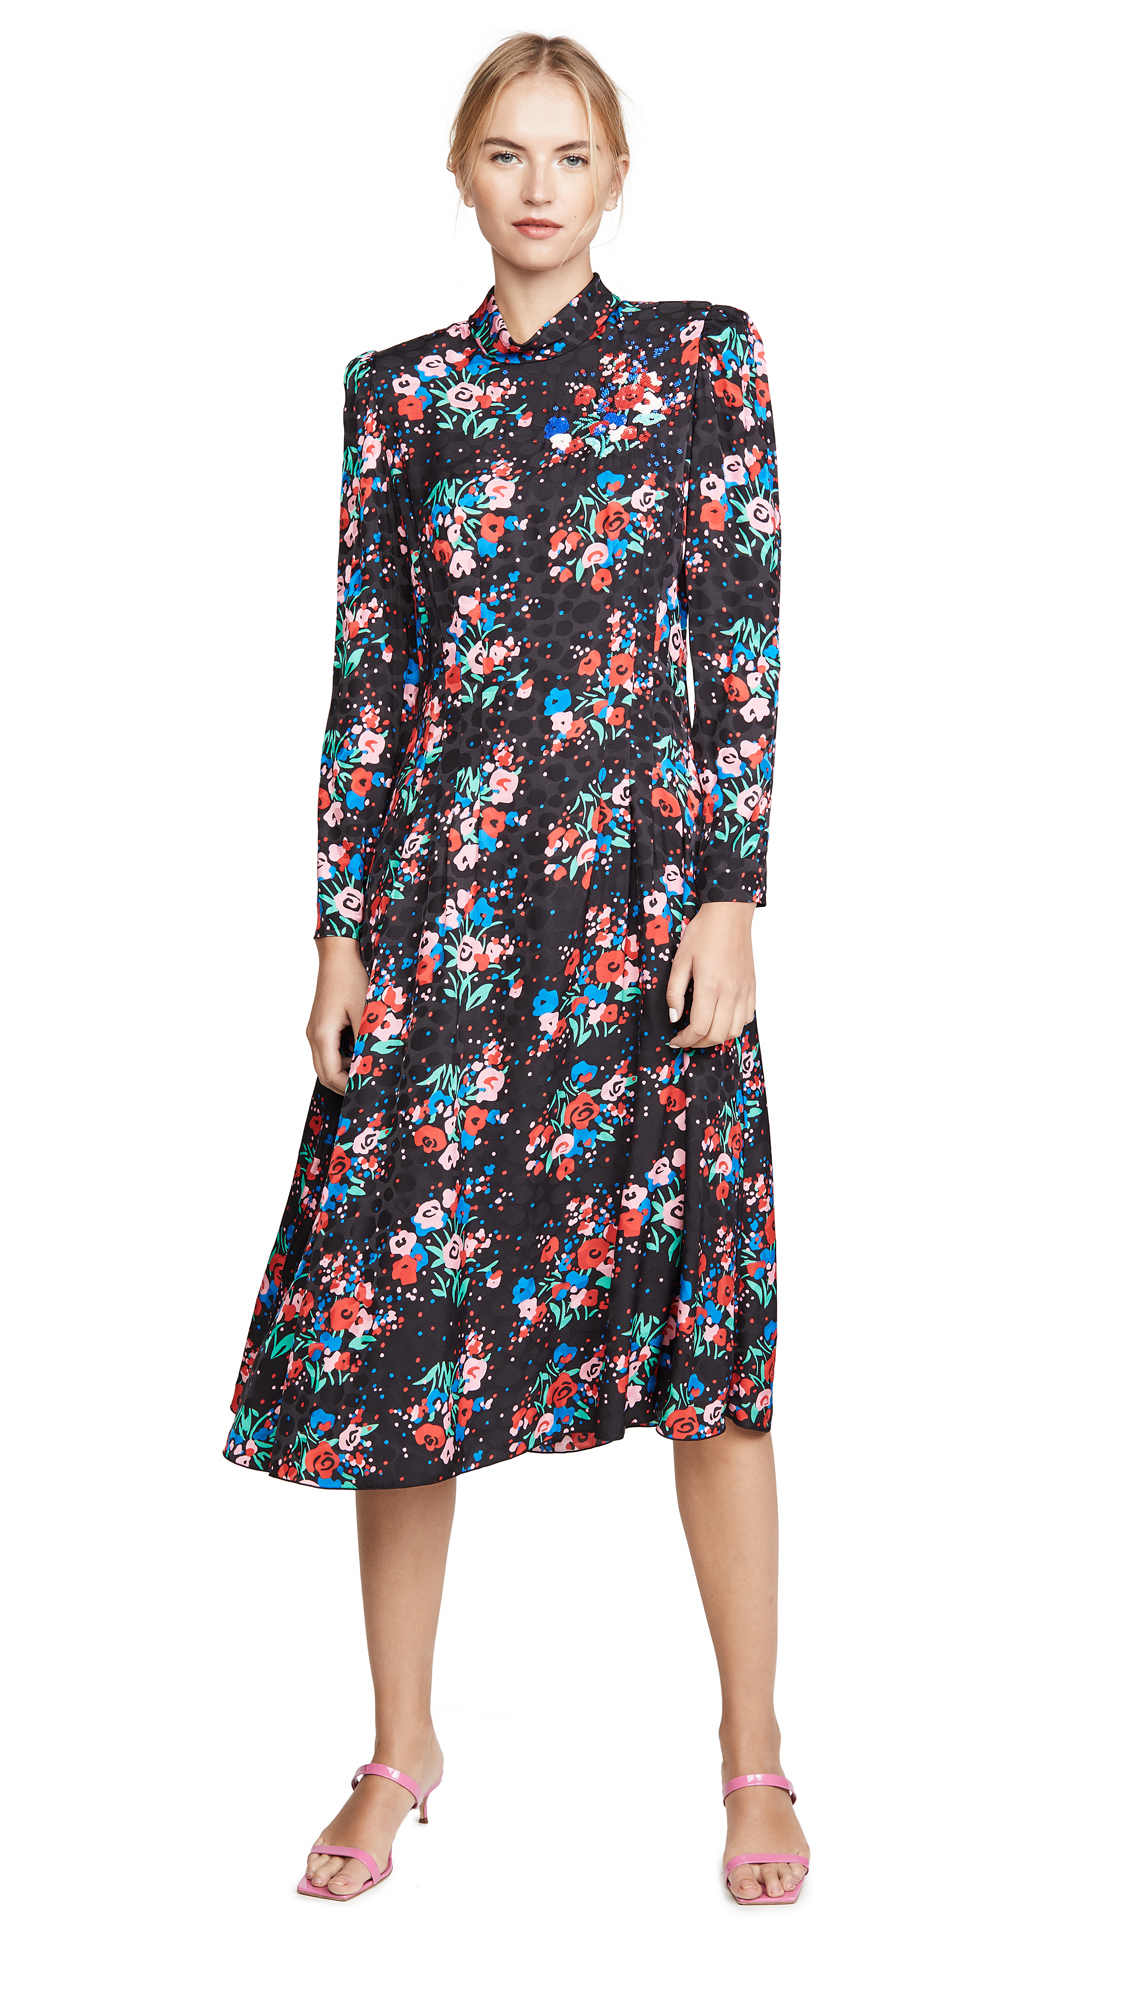 The Marc Jacobs The '40s dress - 50% Off Sale